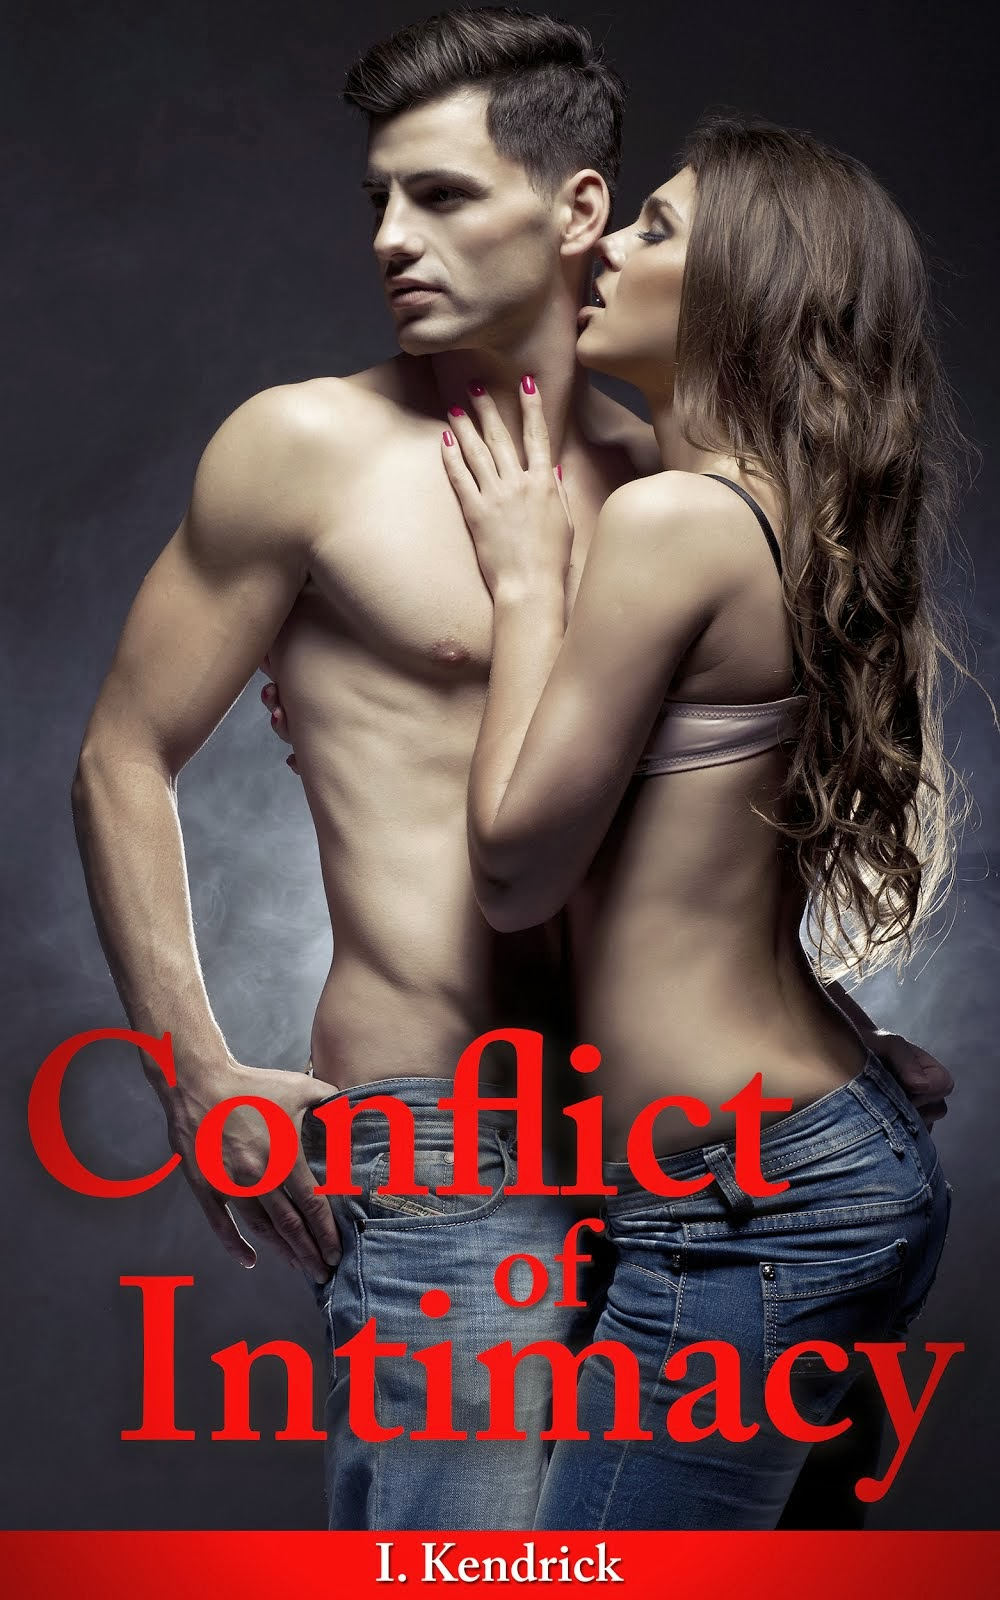 Download the hot read 'Conflict of Intimacy'